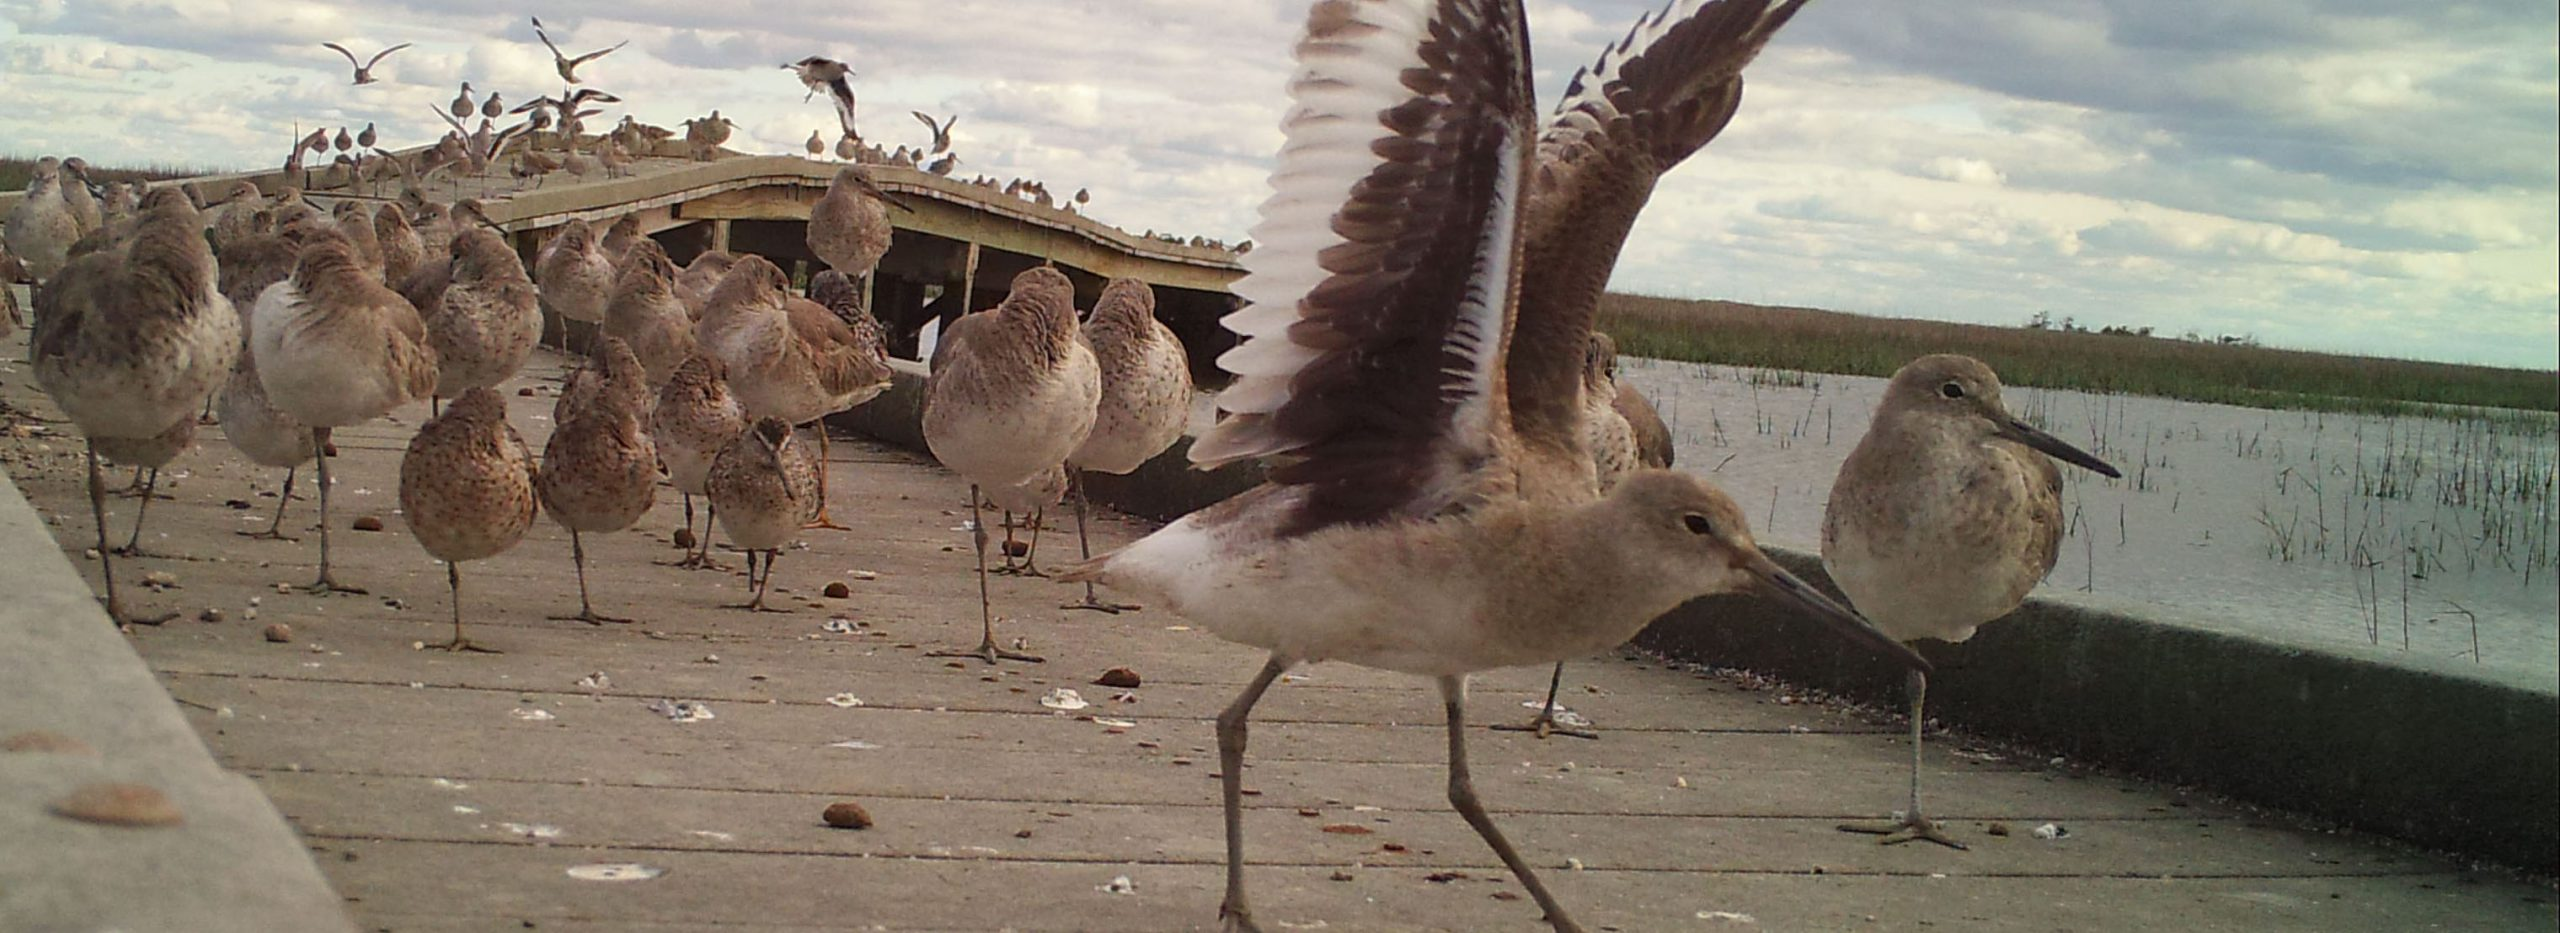 Willet at the education boardwalk